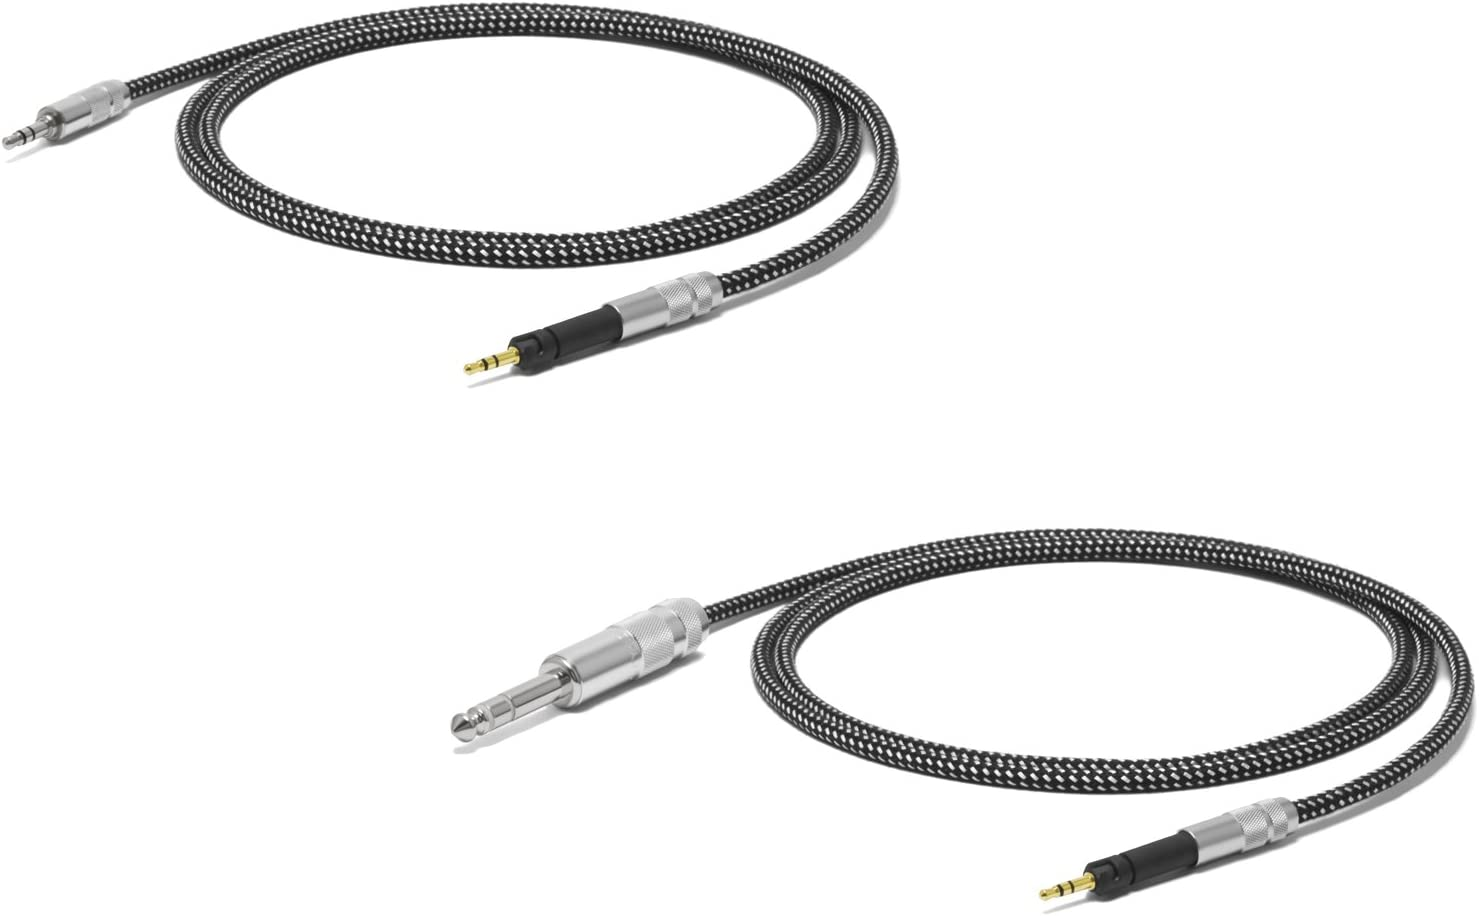 2.5m 【Japan Domestic Genuine Products】 Oyaide Re-Cable HPSC-63HD500